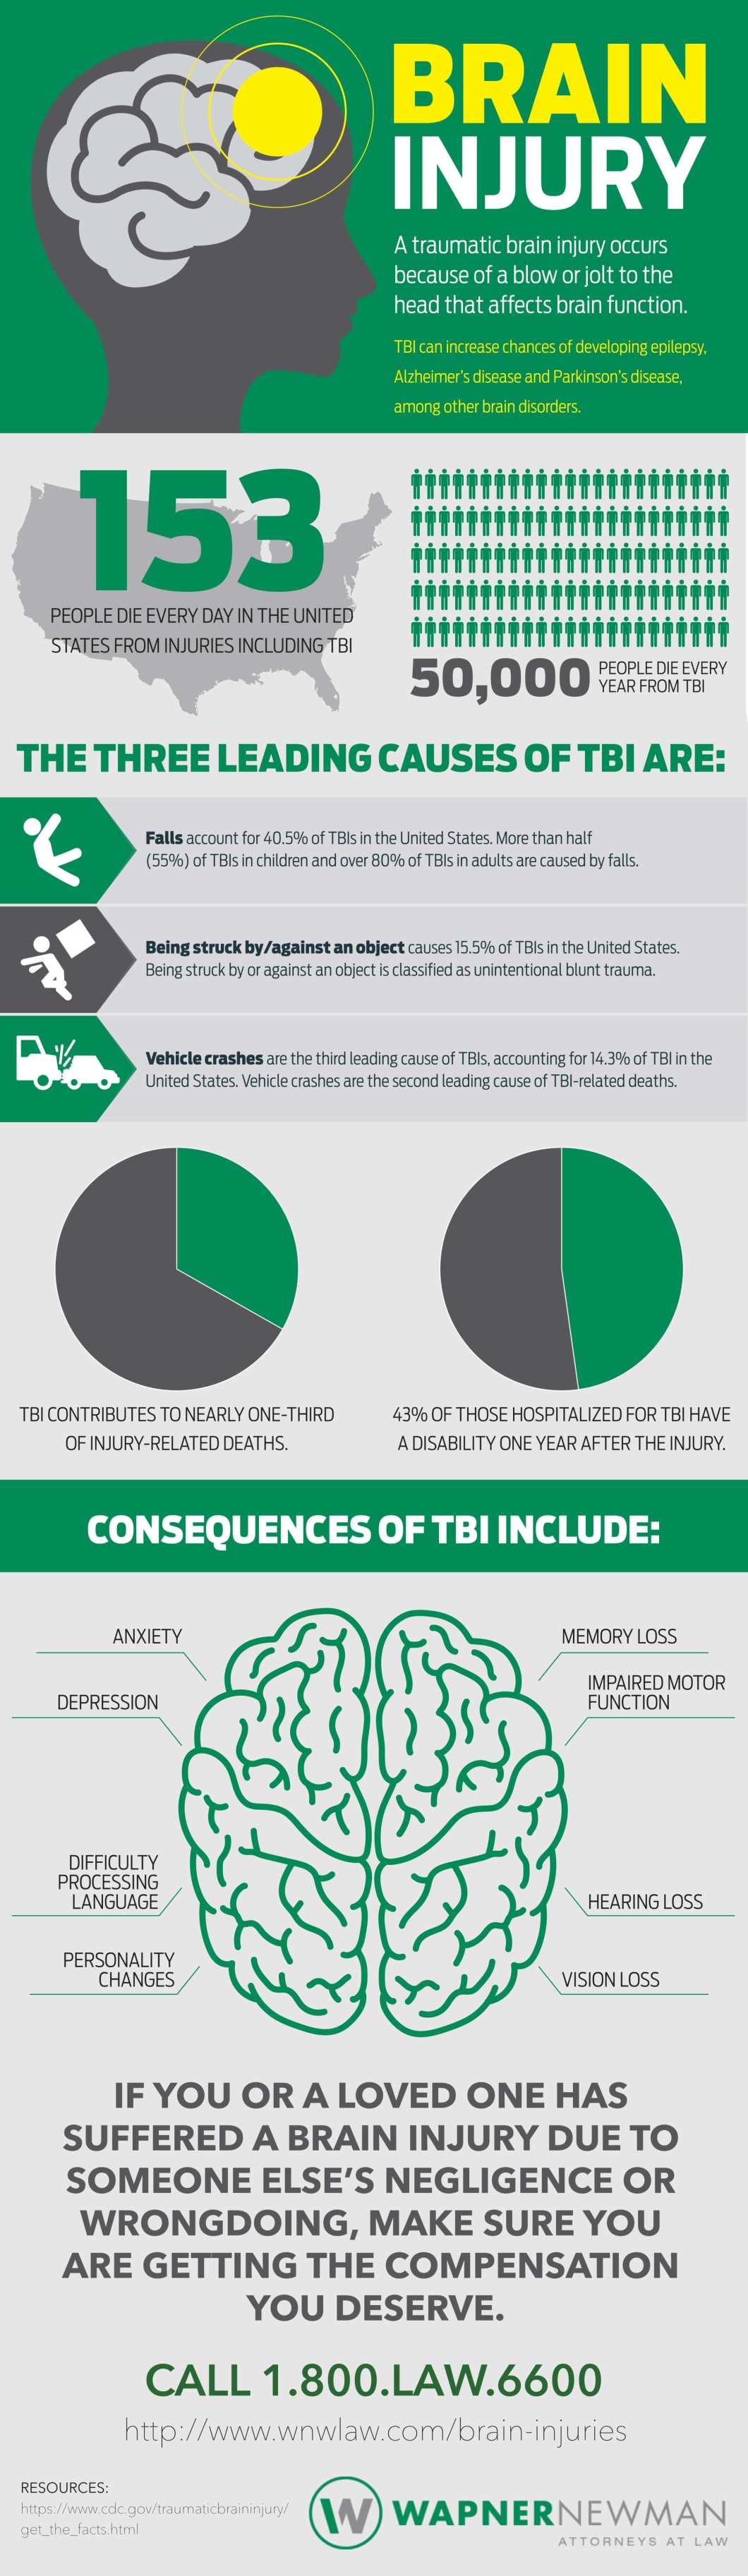 Traumatic Brain Injury: Why You Must Never Ignore It - Infographic